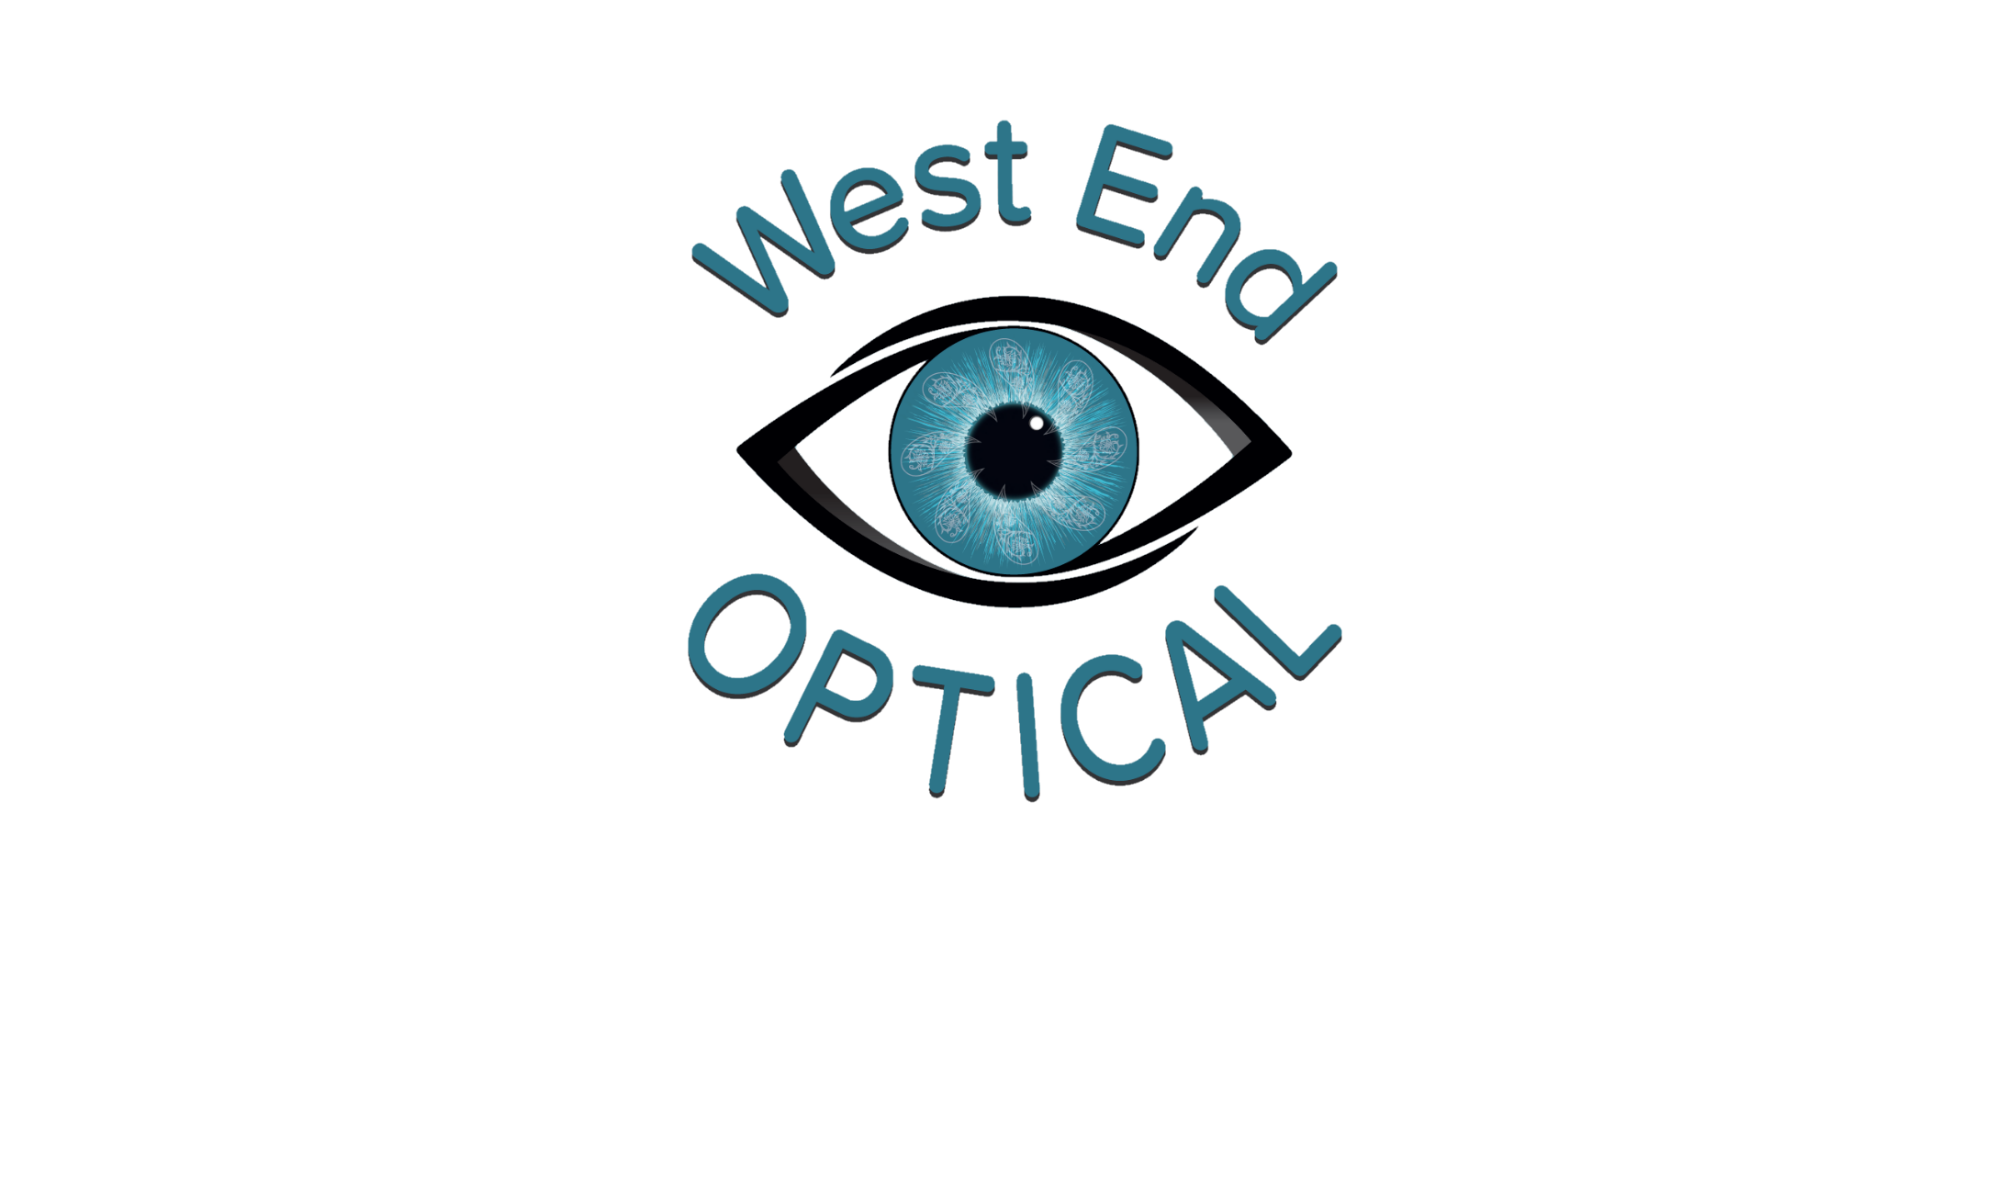 West end optical